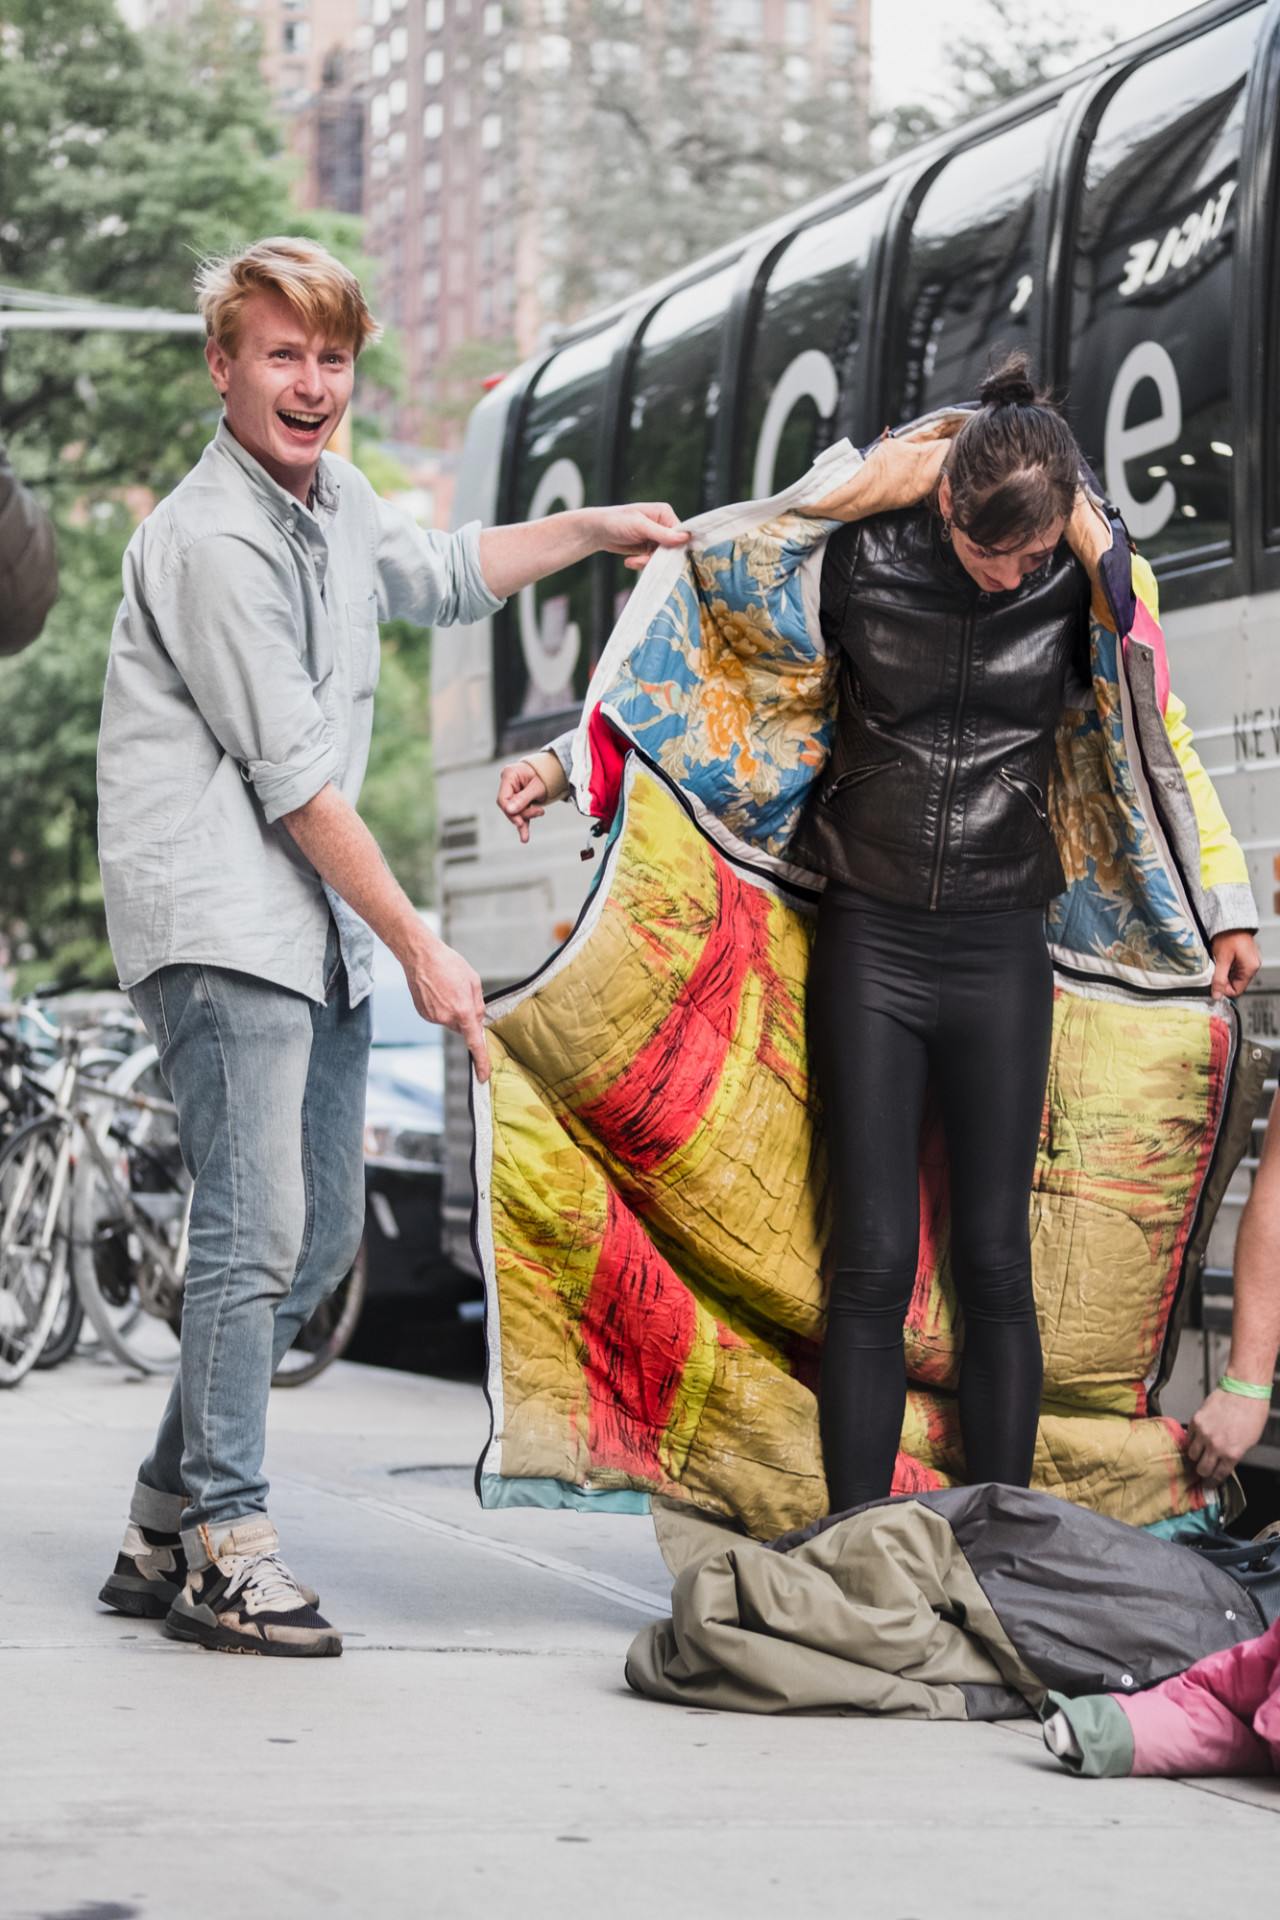 Design Indaba 2020 Brings Sheltersuit From Amsterdam to NY to South Africa